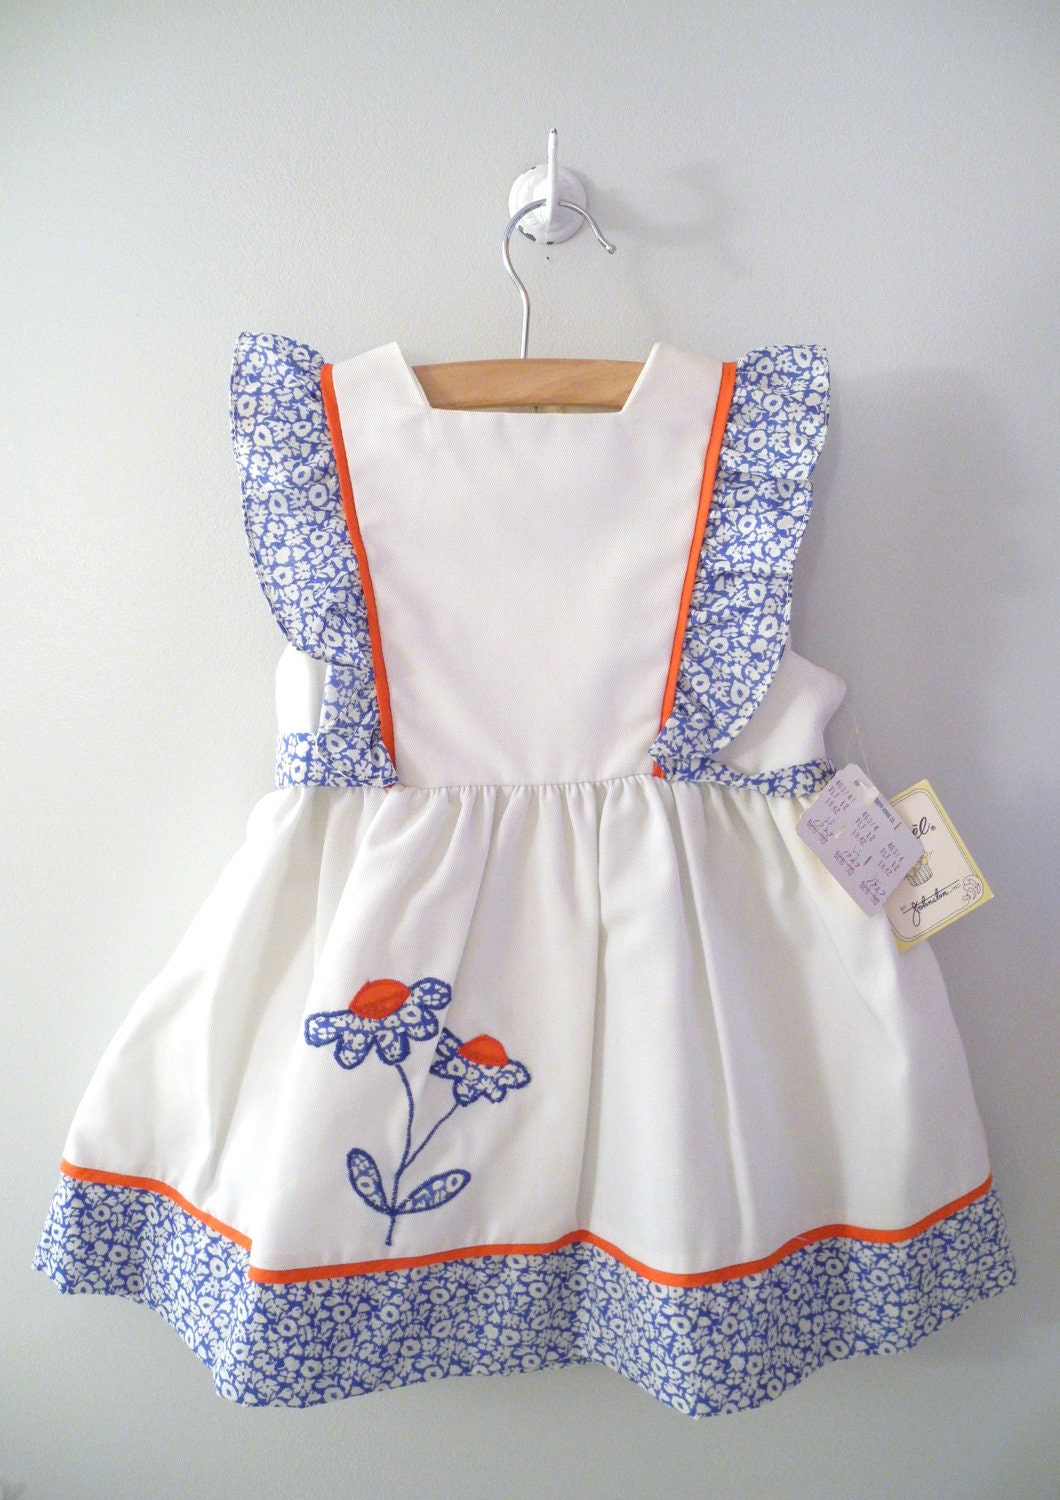 Find great deals on eBay for baby pinafore dresses. Shop with confidence.